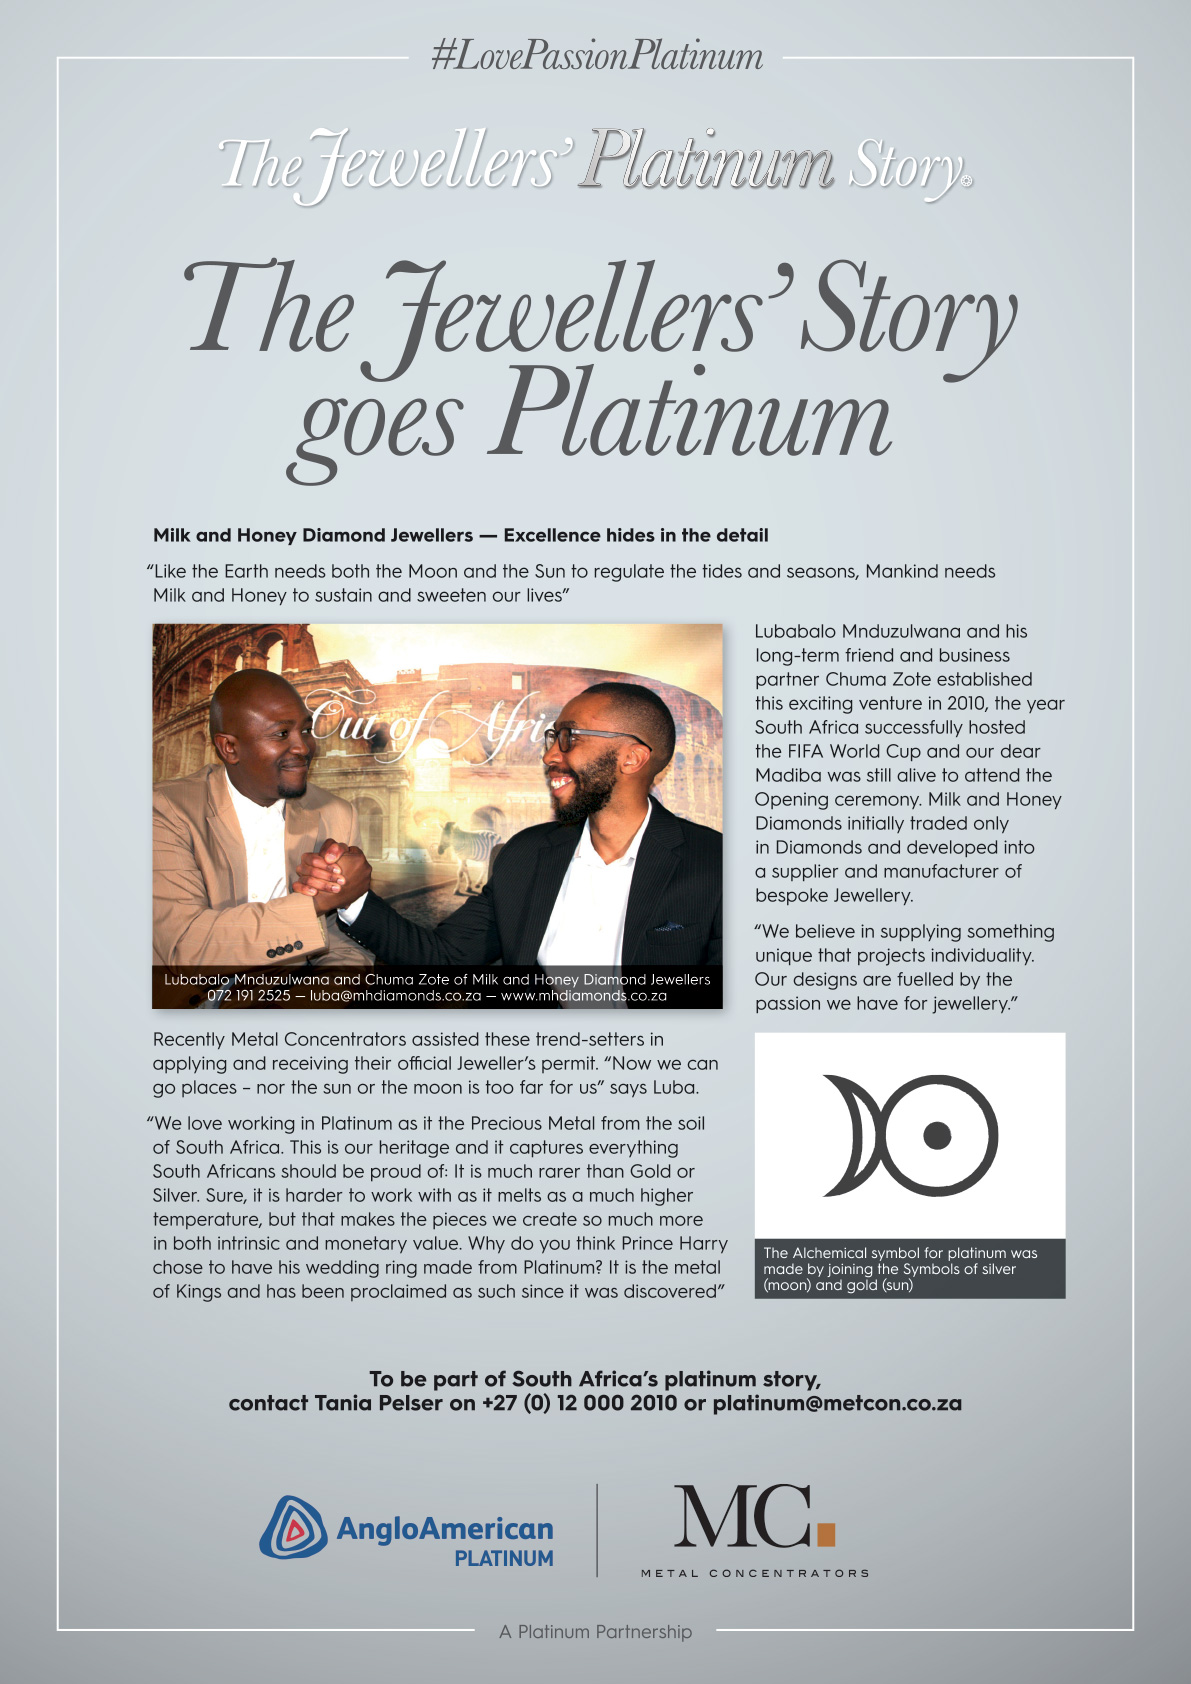 The Jewellers' Story goes Platinum